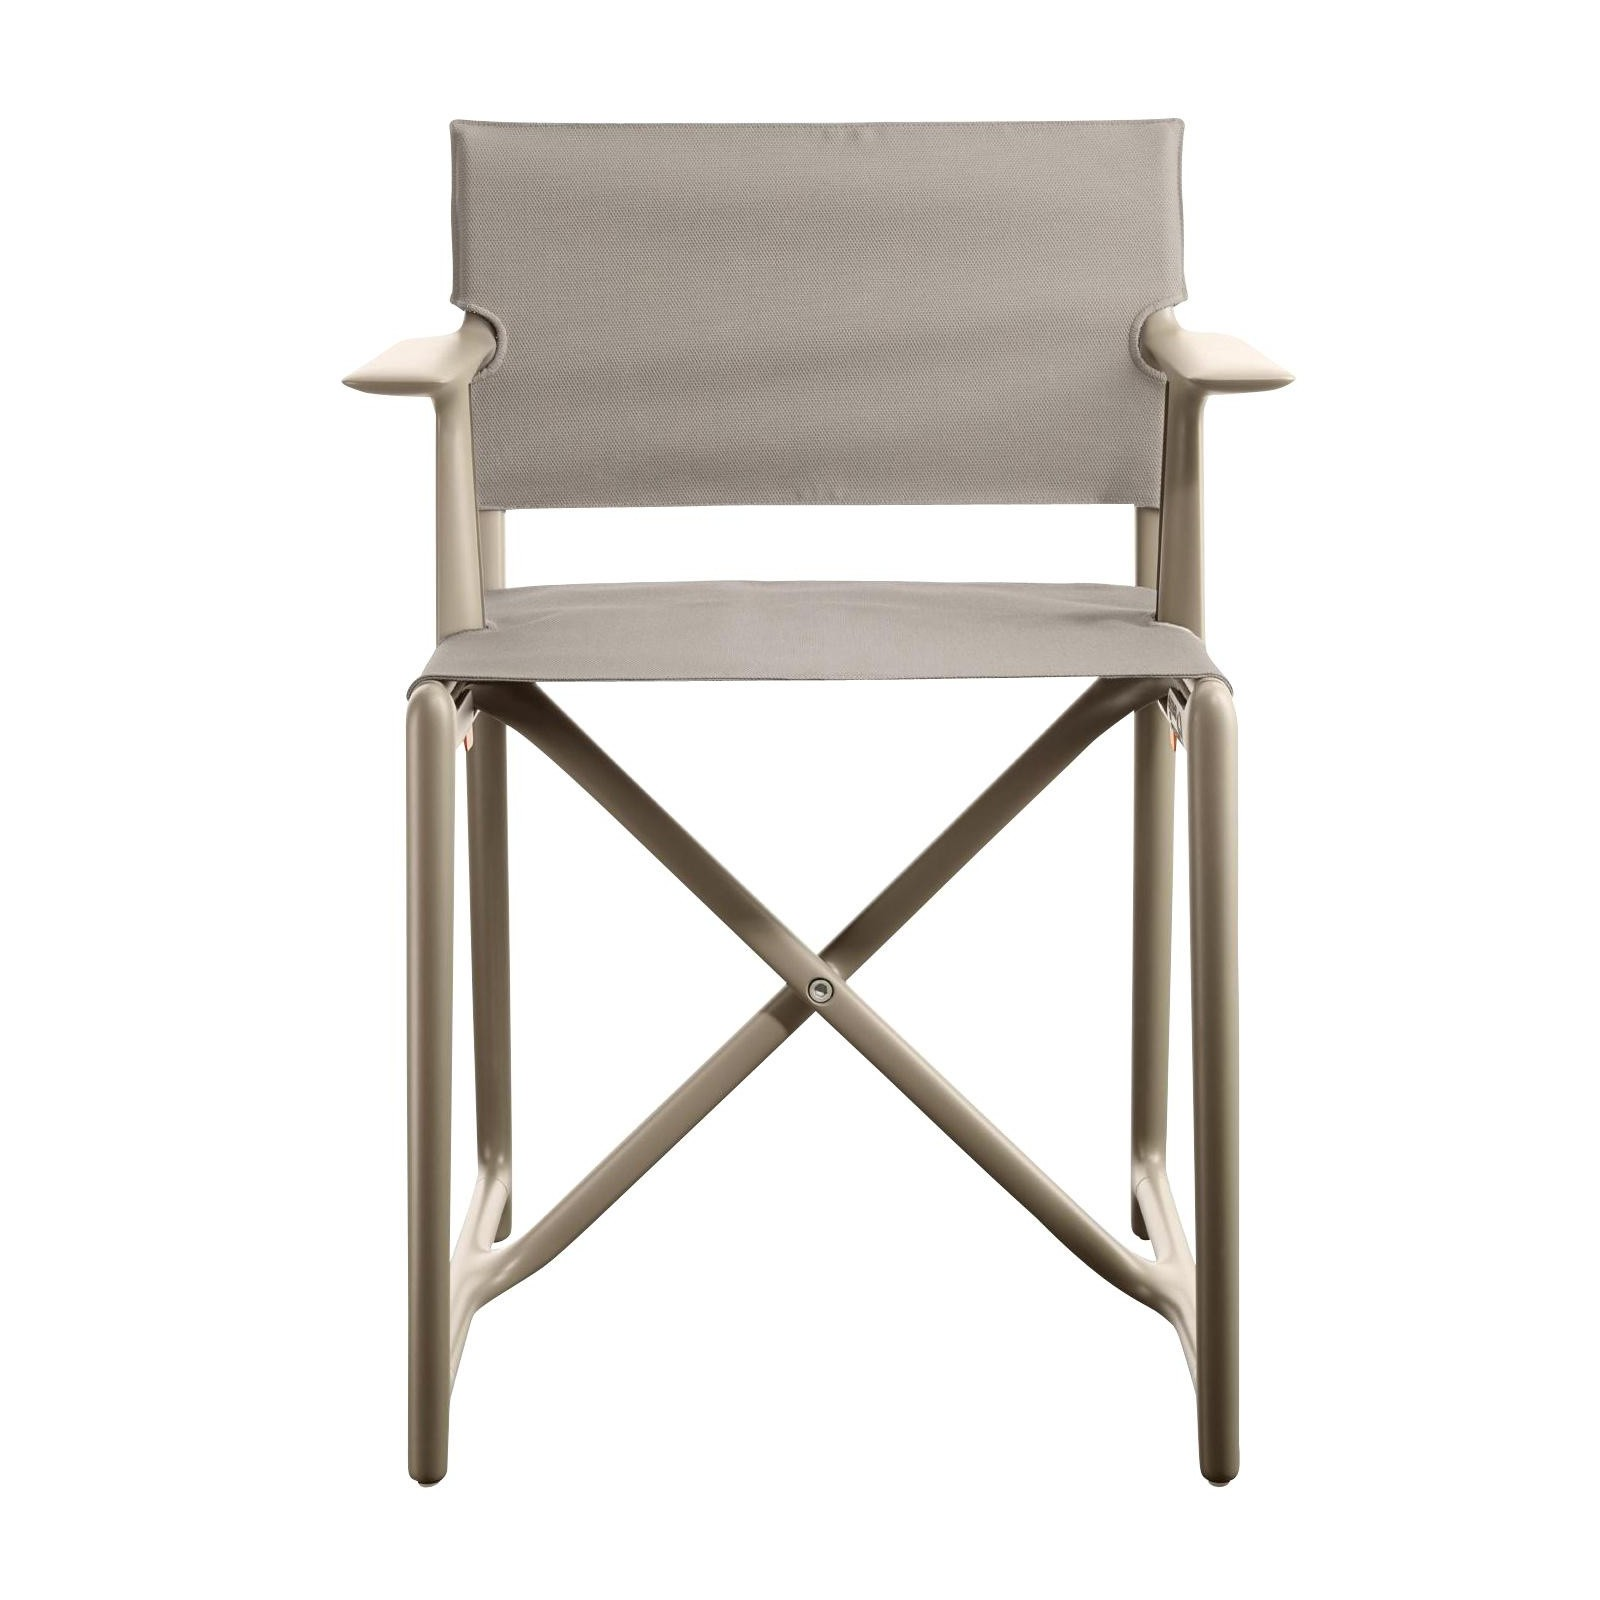 Remarkable Stanley Folding Chair Caraccident5 Cool Chair Designs And Ideas Caraccident5Info